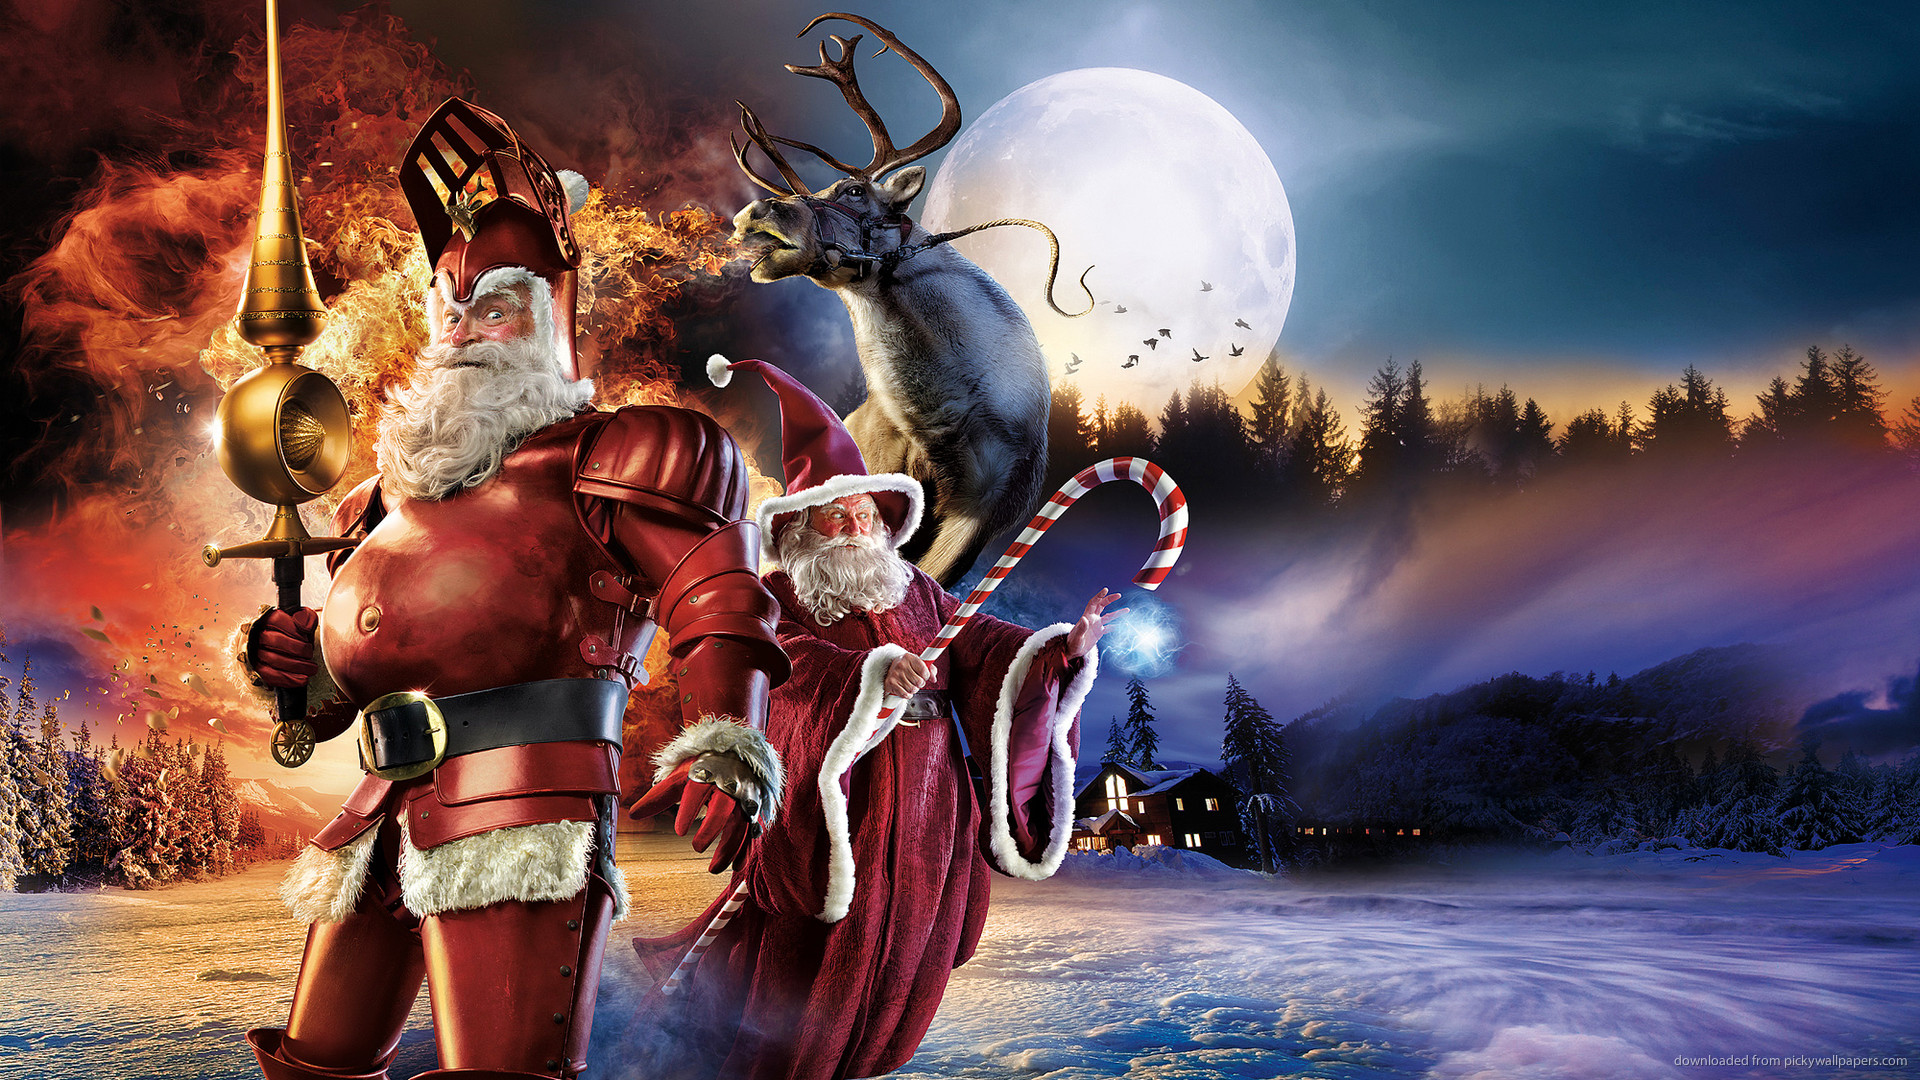 HD Lord of the Rings Christmas wallpaper